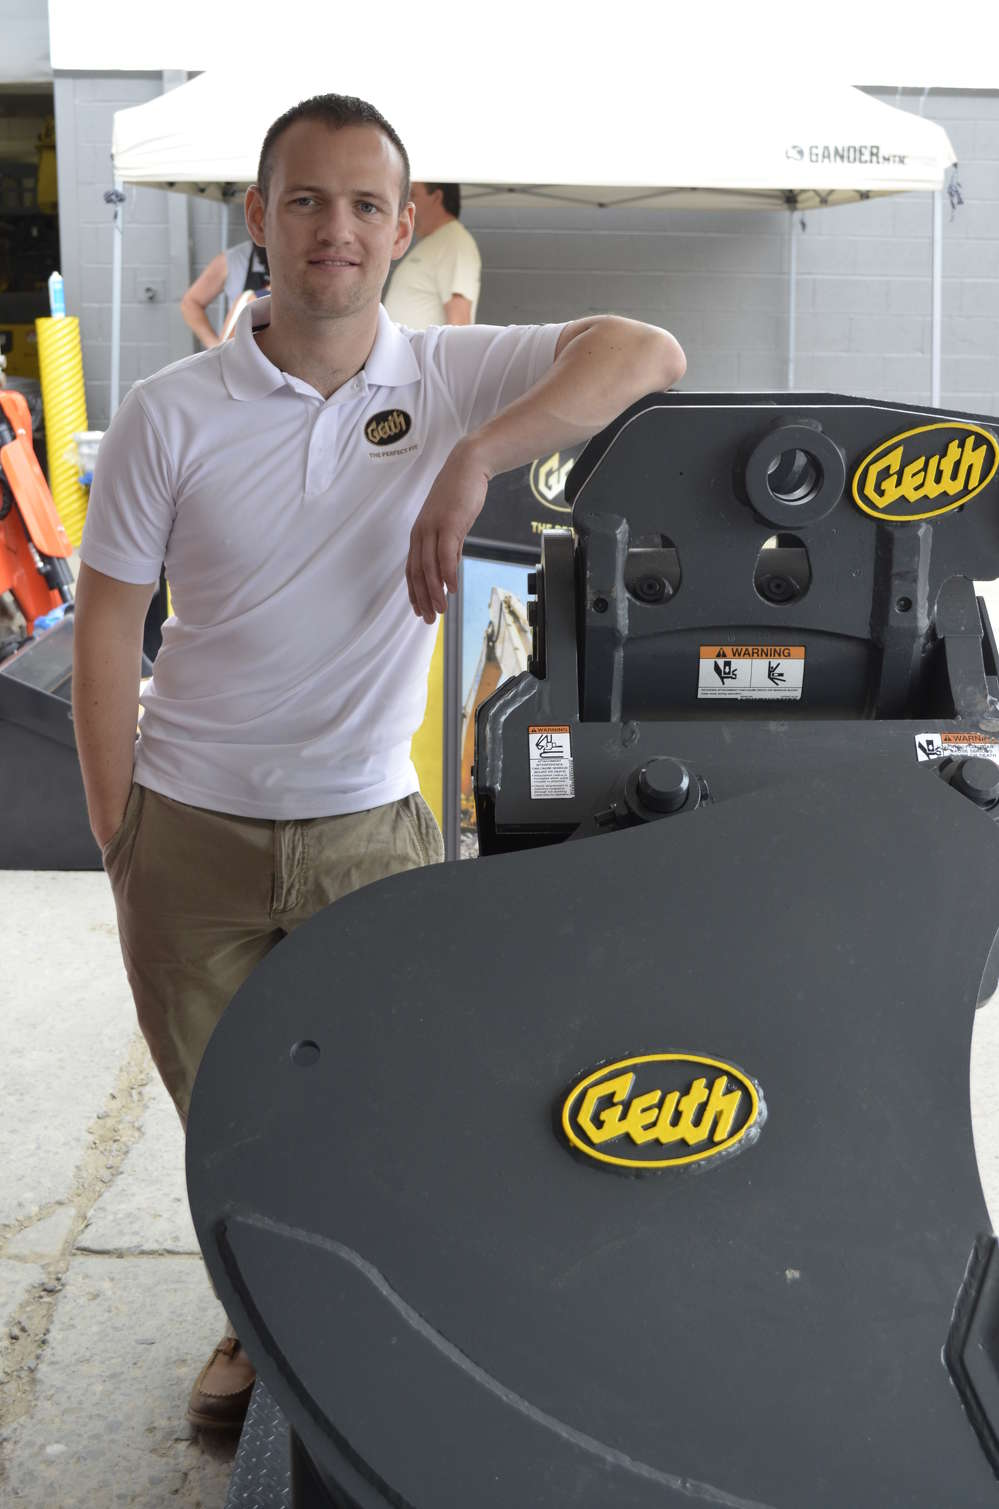 A little bit of equipment trivia … some of you may remember that at one time Geith had its U.S. headquarters just down the road from Pine Bush Equipment and Pine Bush was one of its first dealers.  Representing Geith products is Padraig Egan, territory manager.